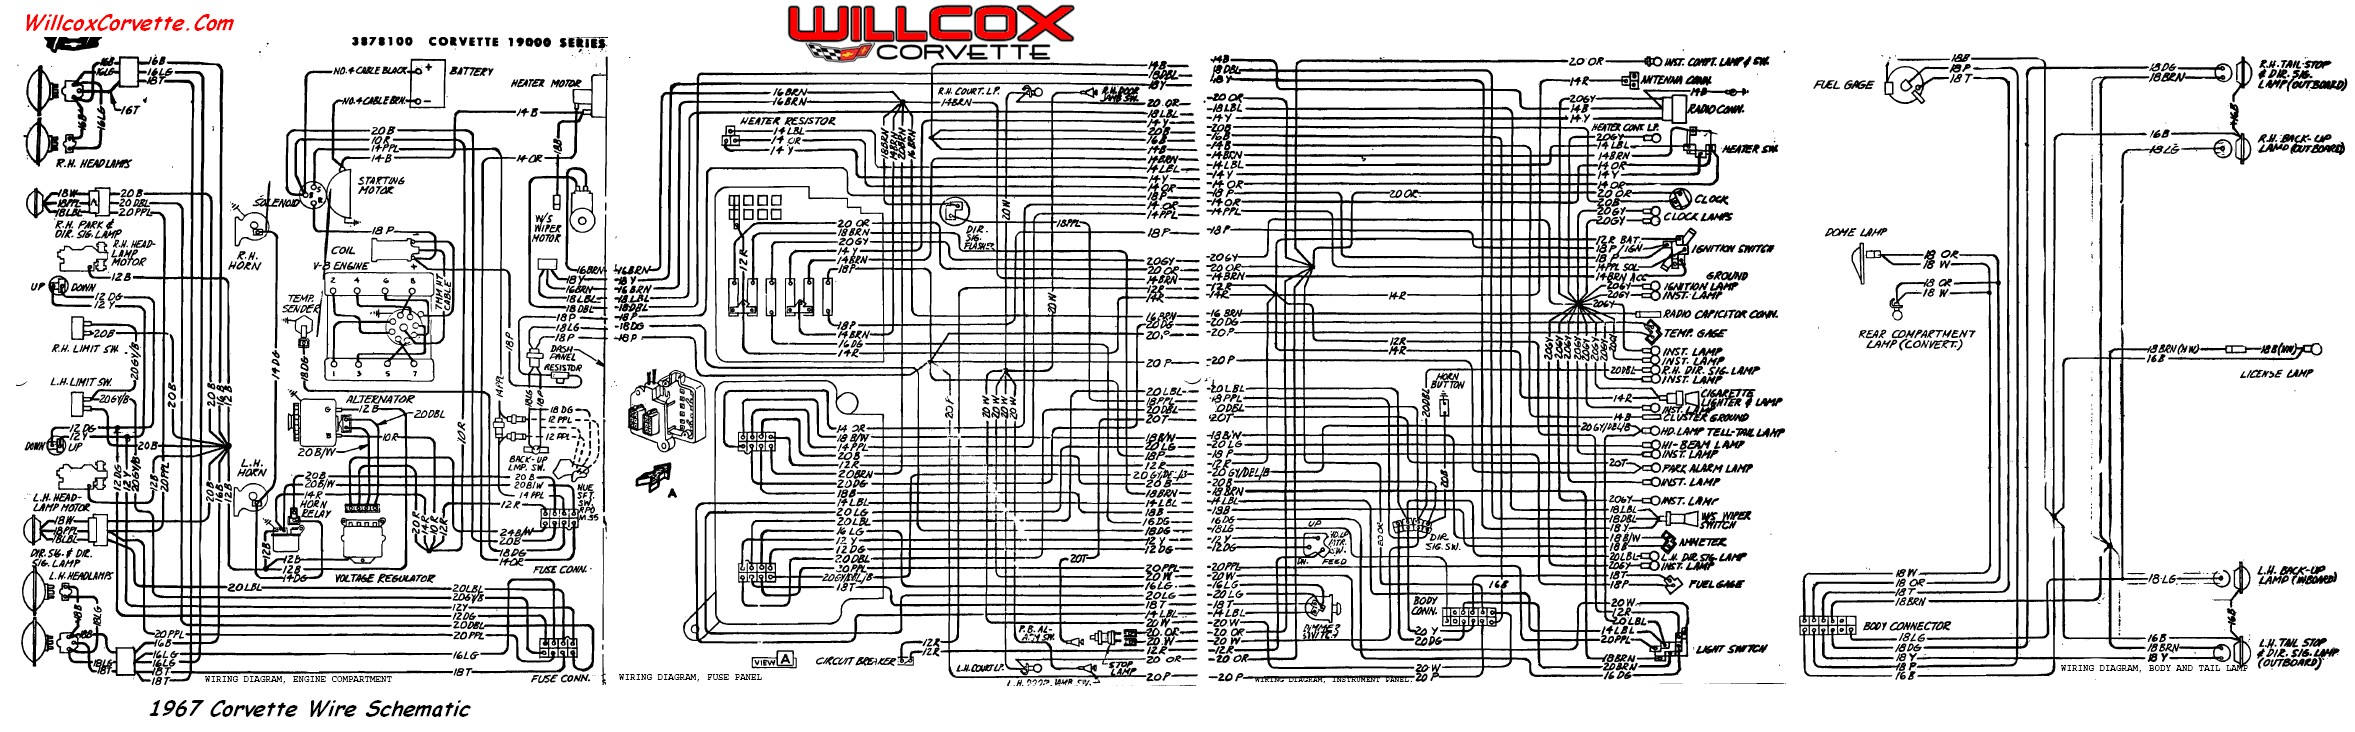 1976 corvette dash wiring diagram 1988 mazda b2200 stereo 80 best library diagrams 79